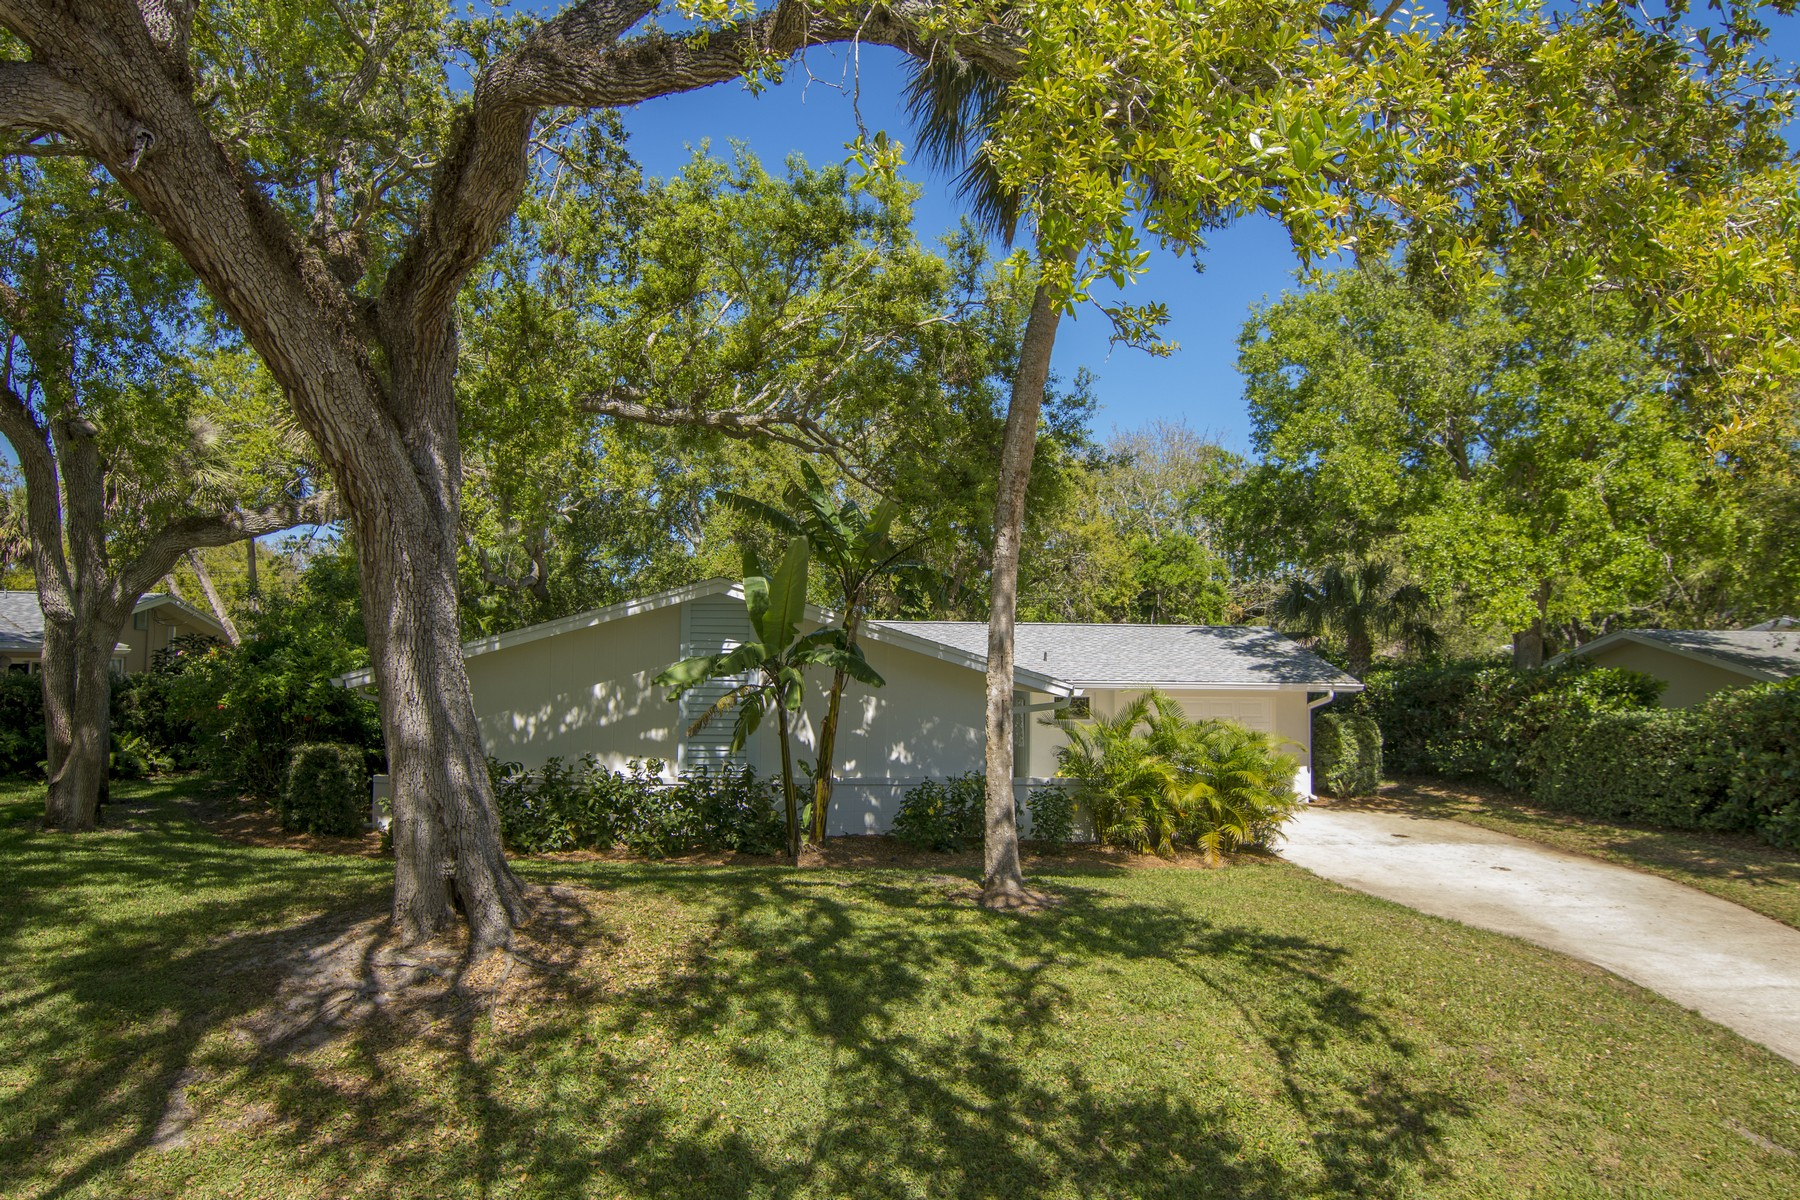 Single Family Home for Sale at Perfect Central Beach Home 365 Fiddlewood Road, Vero Beach, Florida, 32963 United States